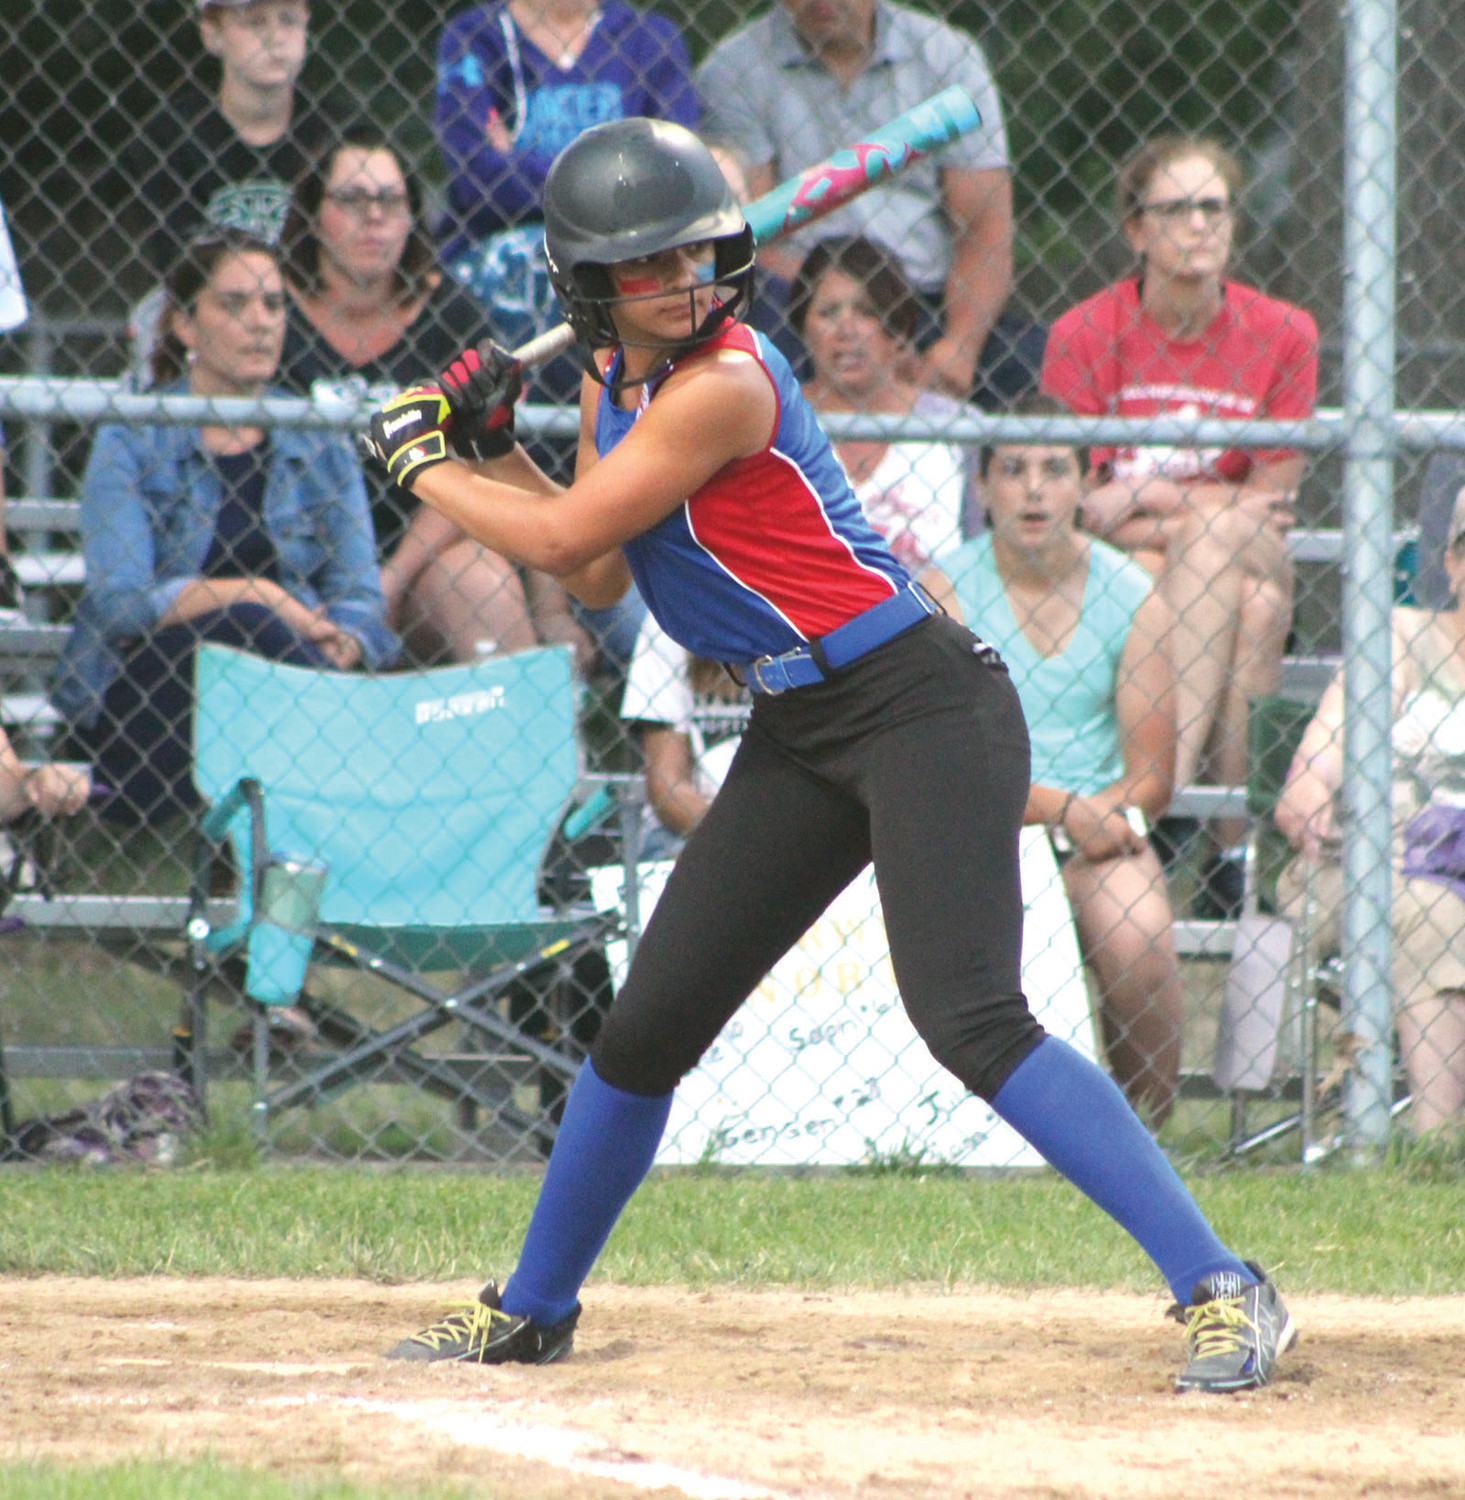 PLAYING THE FIELD: CNB's Ava Santo at bat against Warwick North.